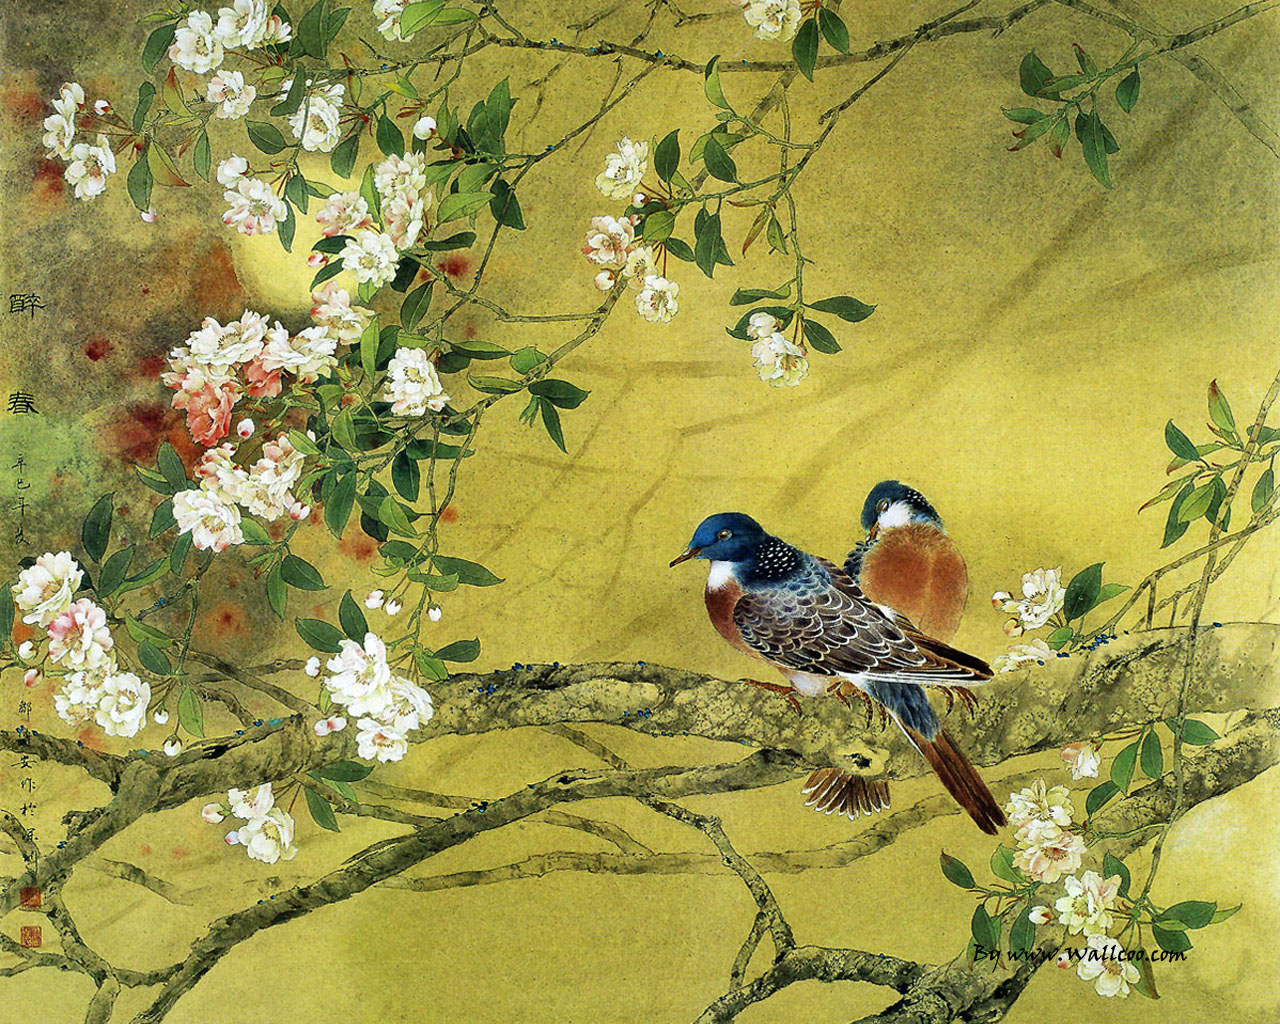 Flower and Bird Painting by Zou Chuan An 12801024 NO3 Wallpaper 1280x1024